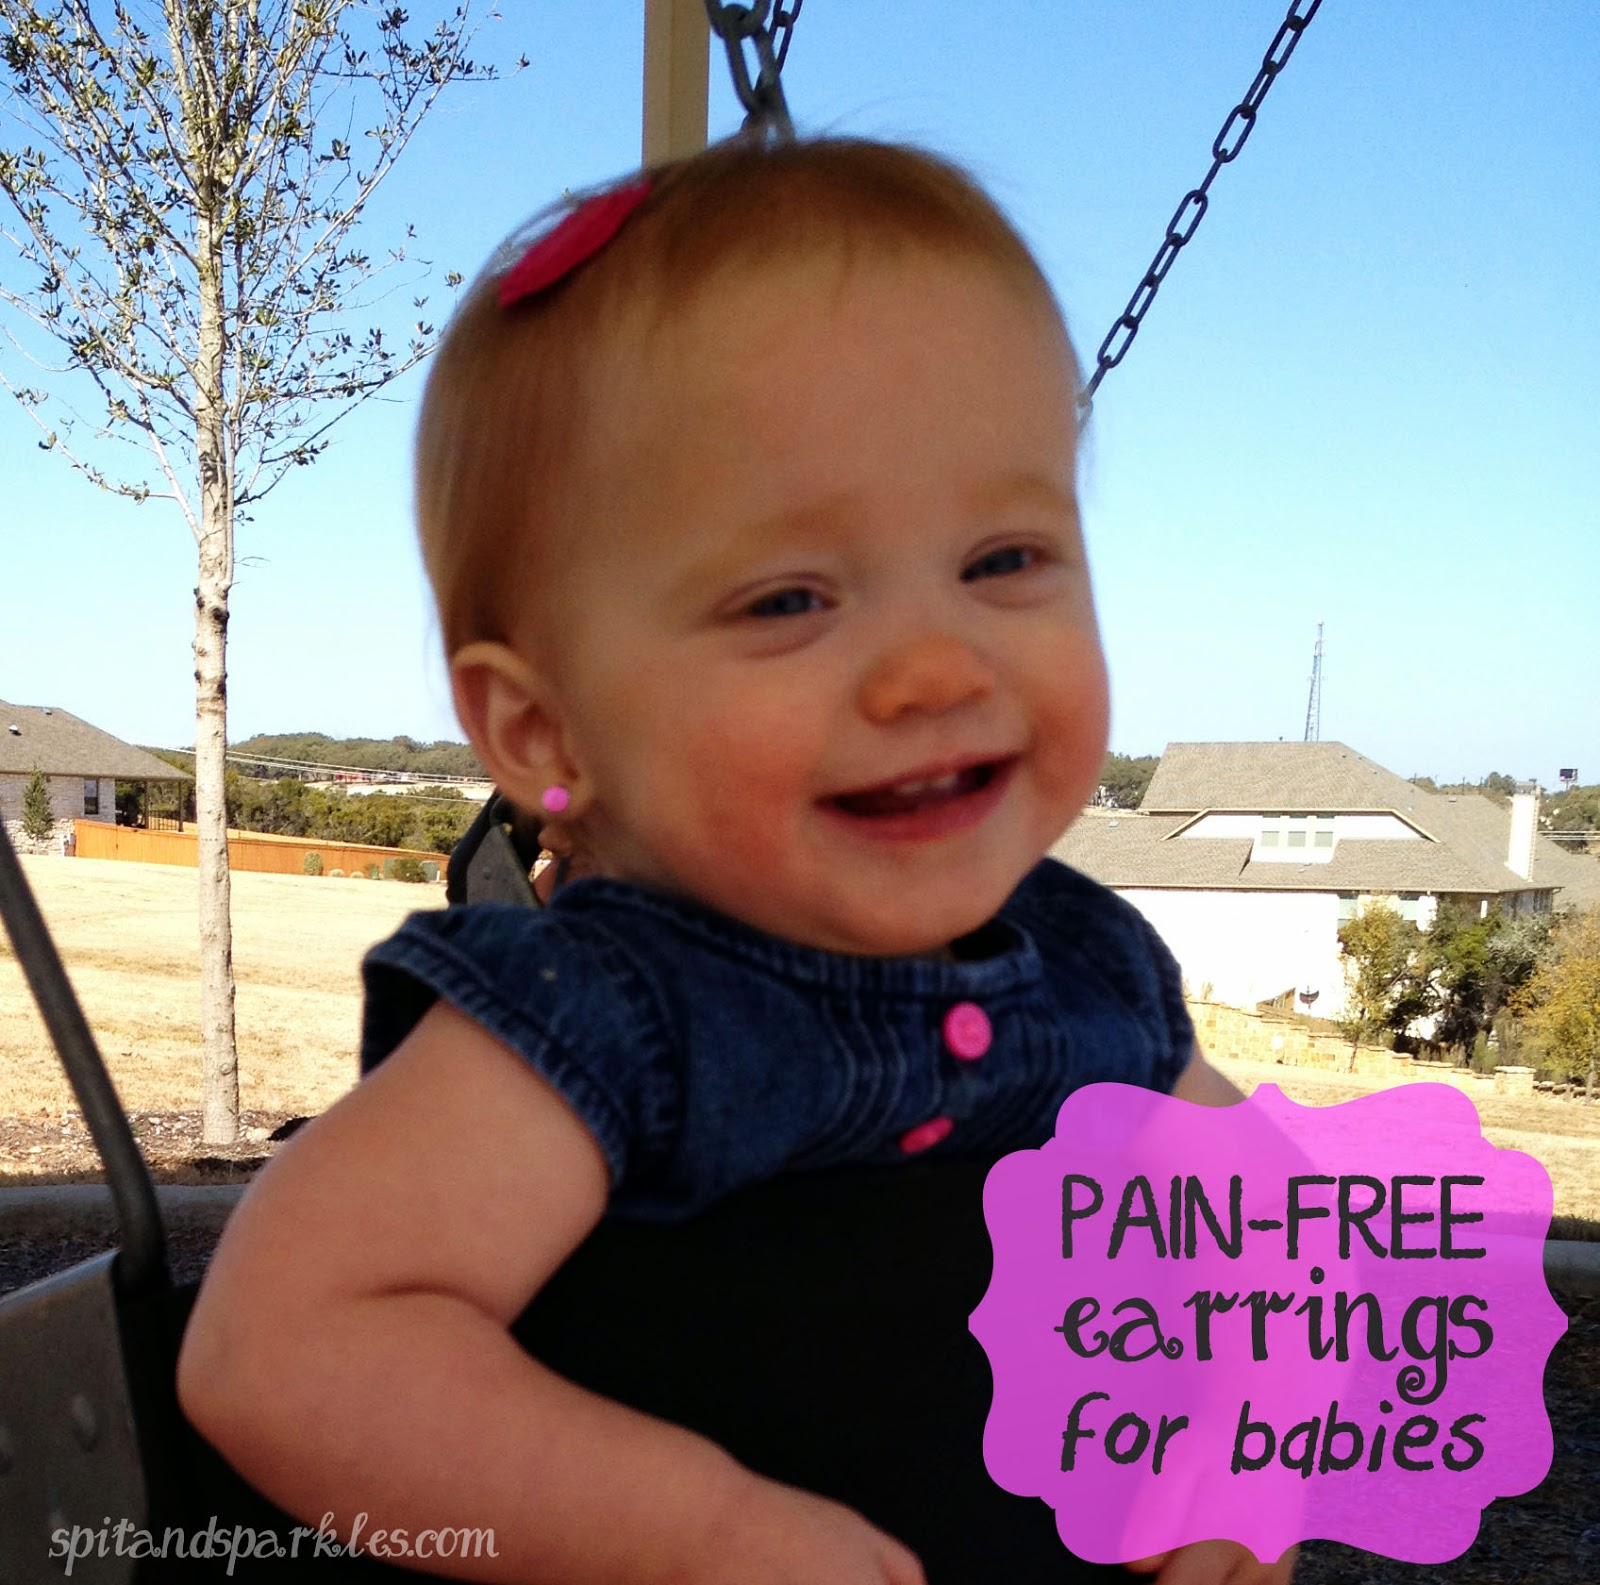 Pain-free, maintenance-free earrings for babies are as easy as using stickers! #fashion #trendybaby